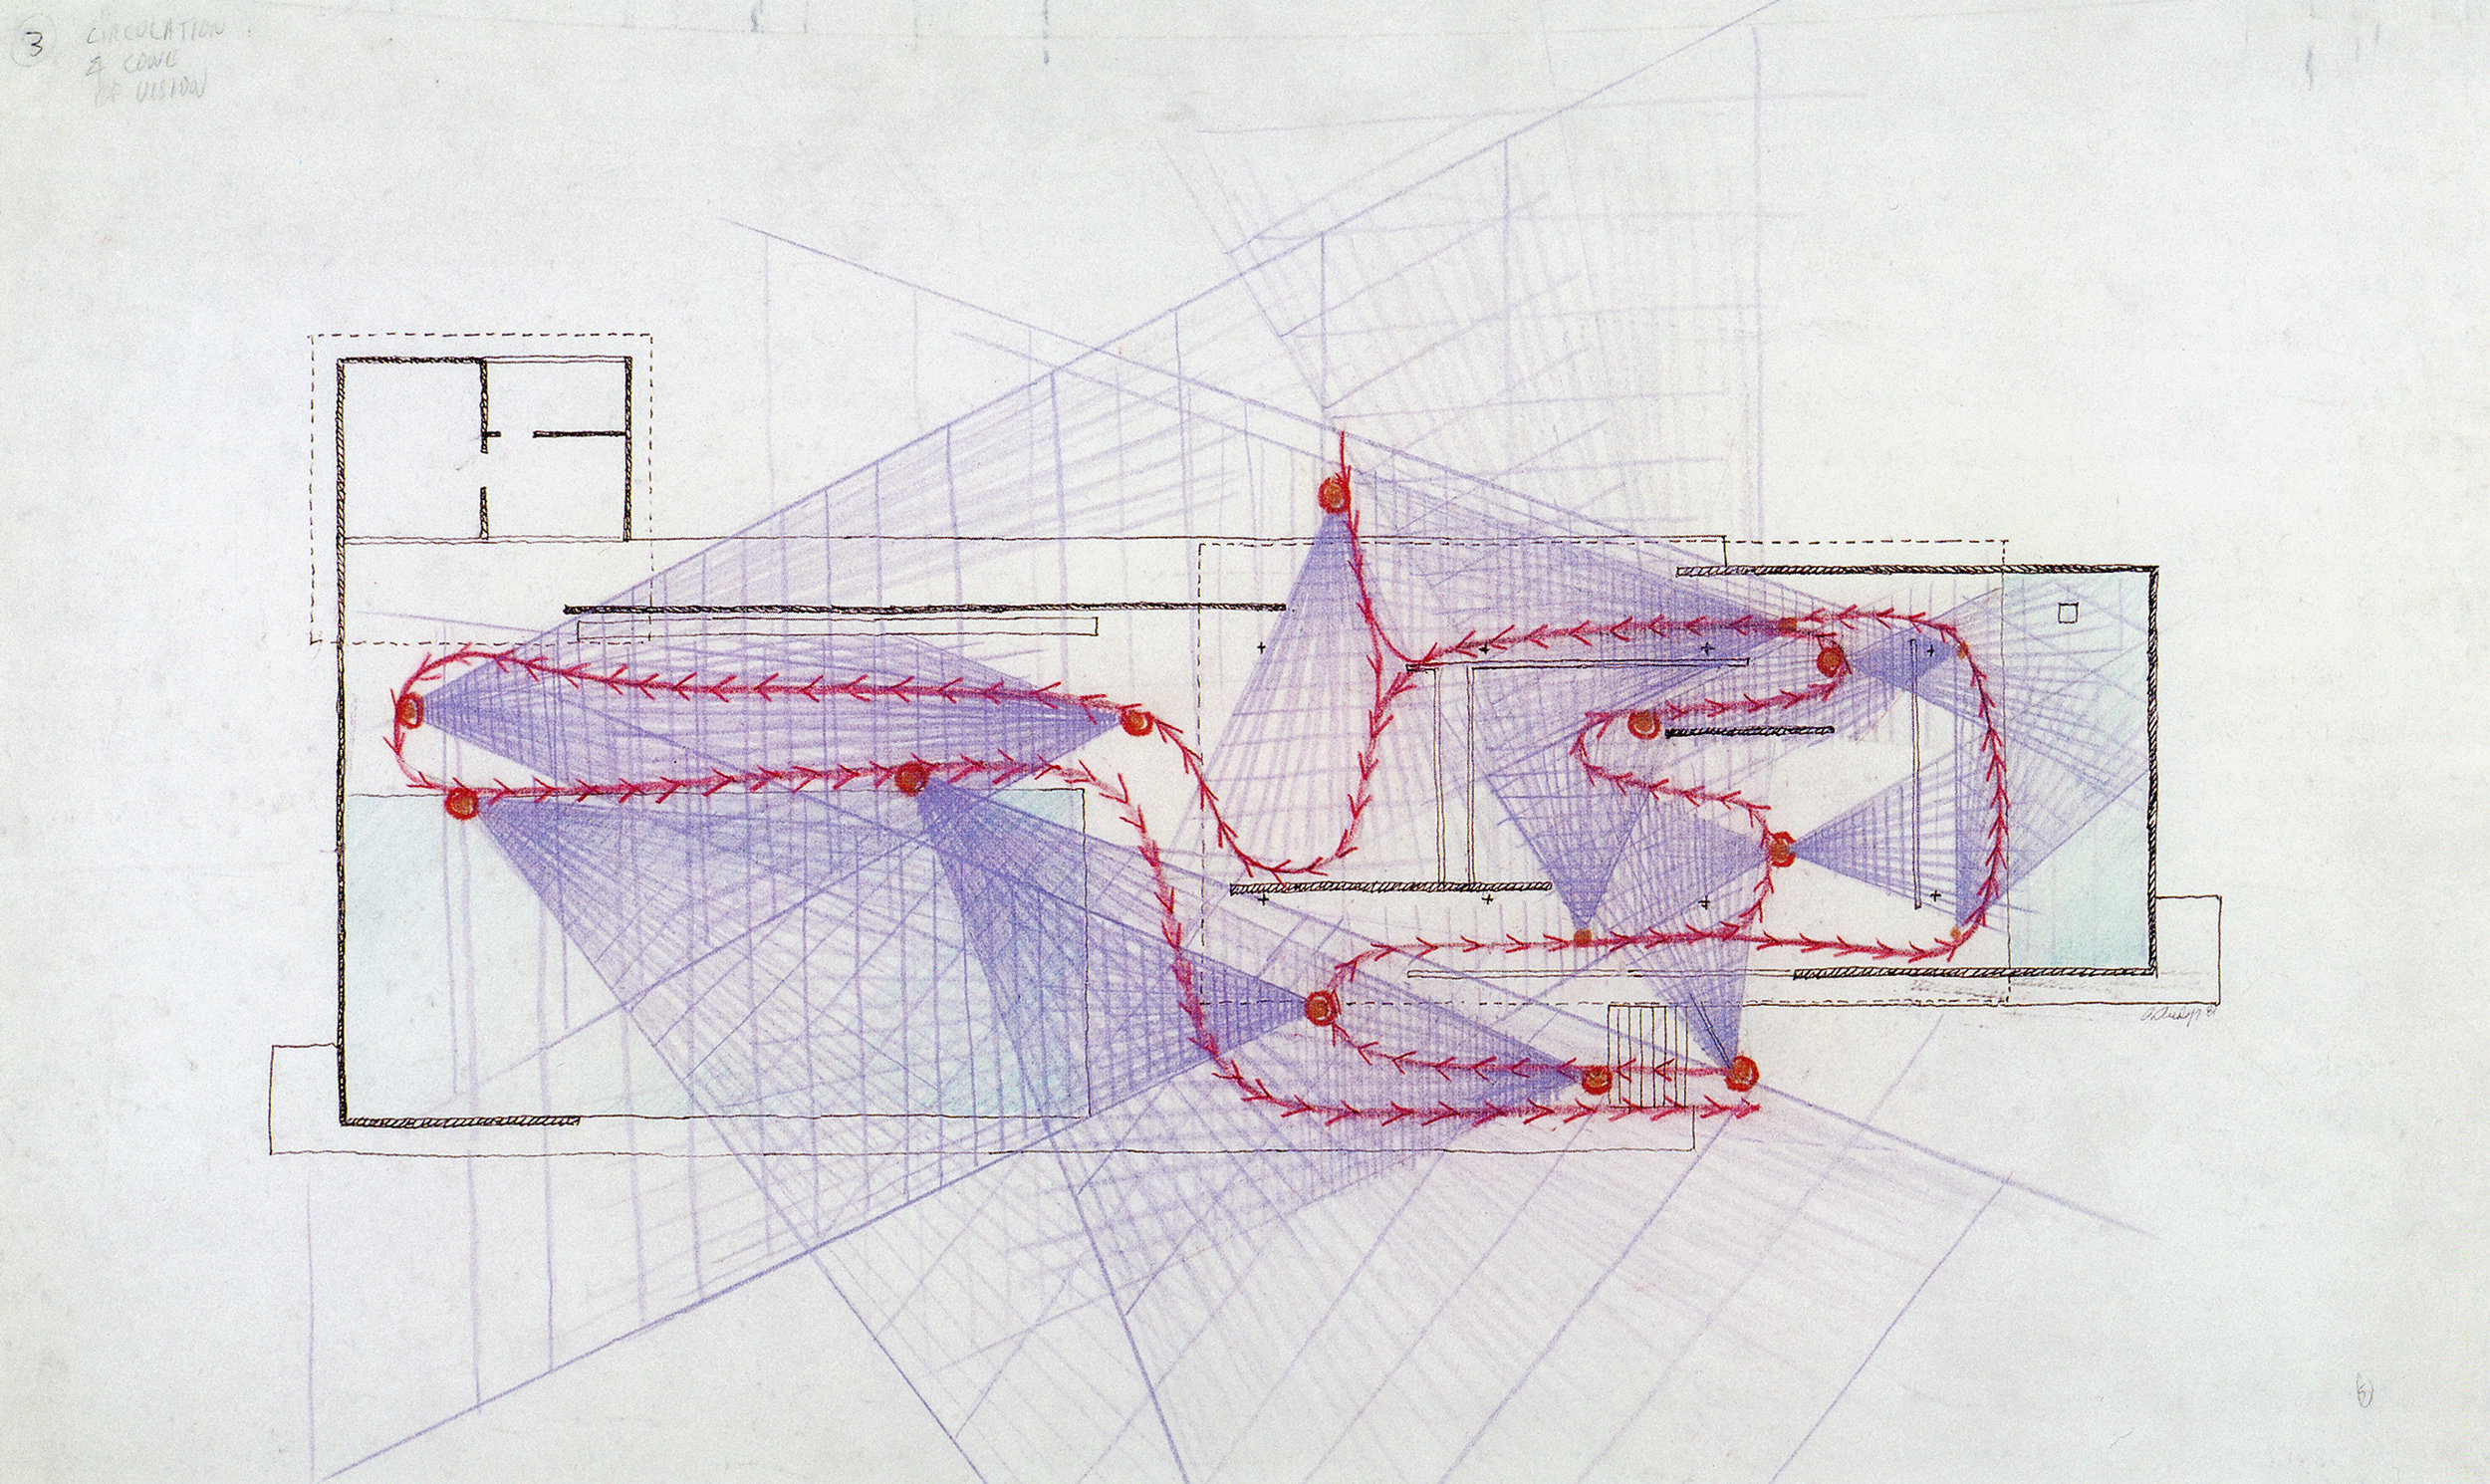 'Circulation & Cone Of Vision' - Paul Rudolph's graphic analysis of Mies's Barcelona Pavilion. Image from the Archives of the Paul Rudolph Heritage Foundation.